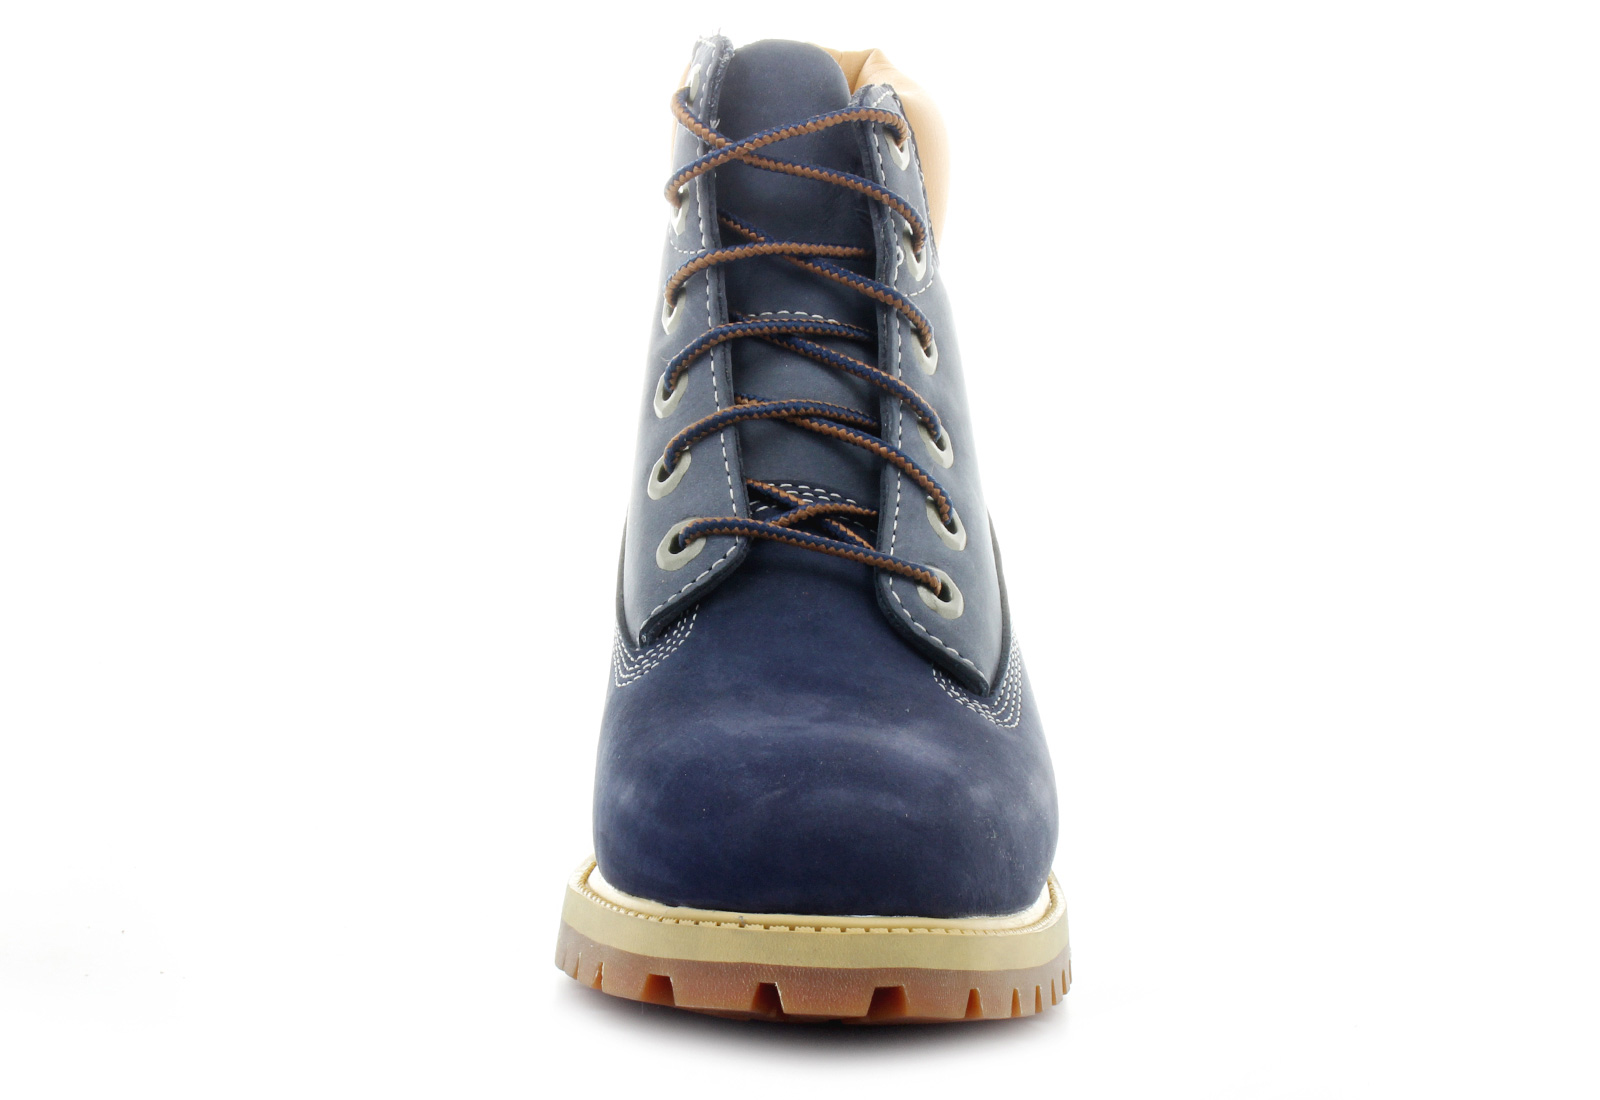 timberland boots 6 inch premium boot a14zd blu online shop for sneakers shoes and boots. Black Bedroom Furniture Sets. Home Design Ideas